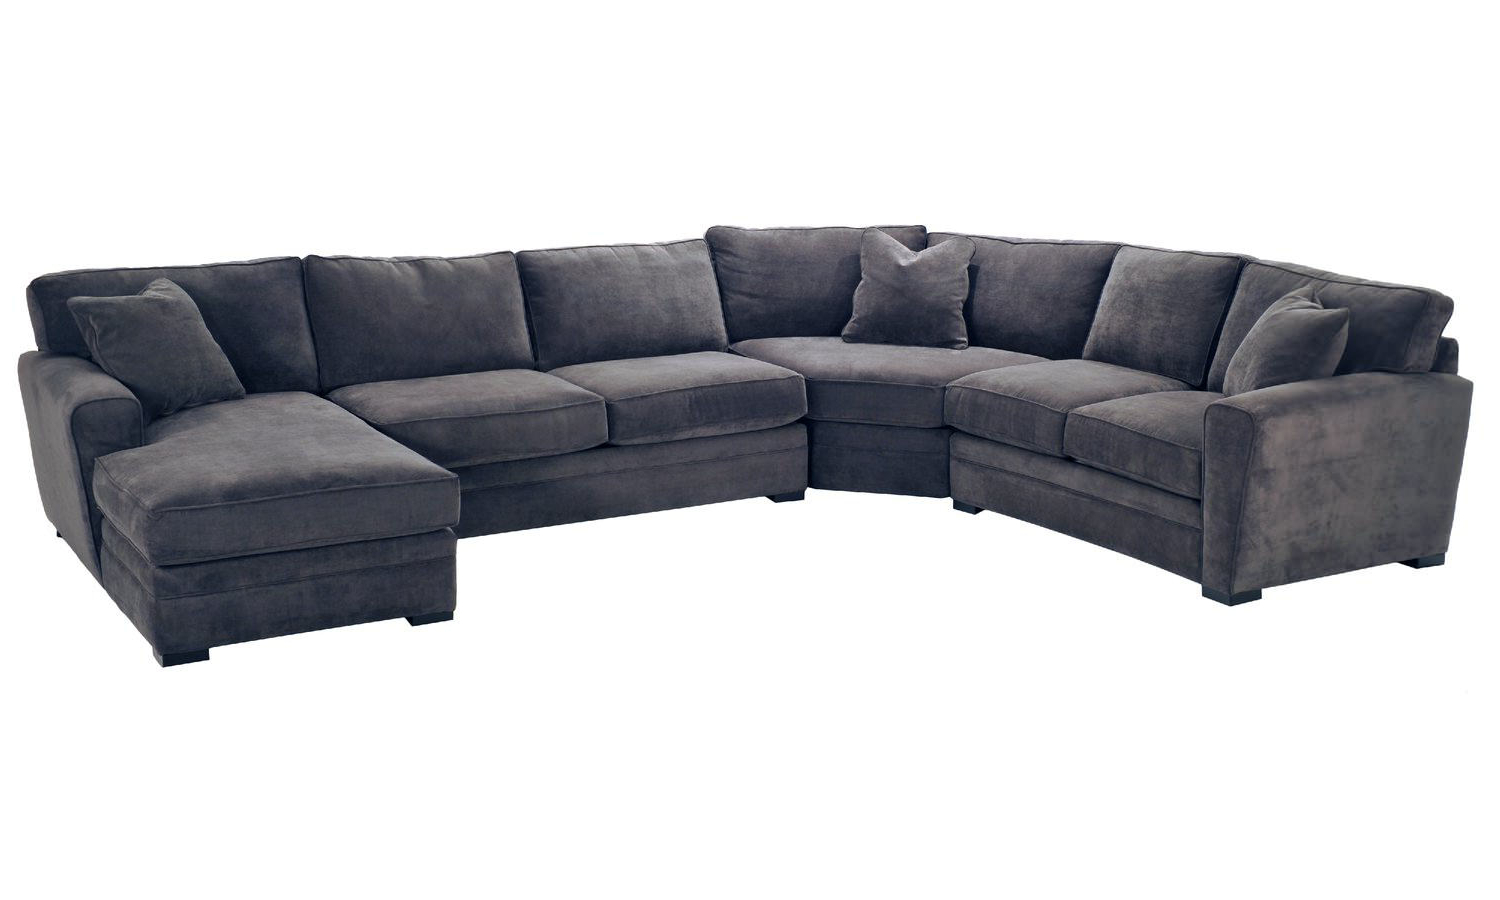 Hom Furniture (View 3 of 20)